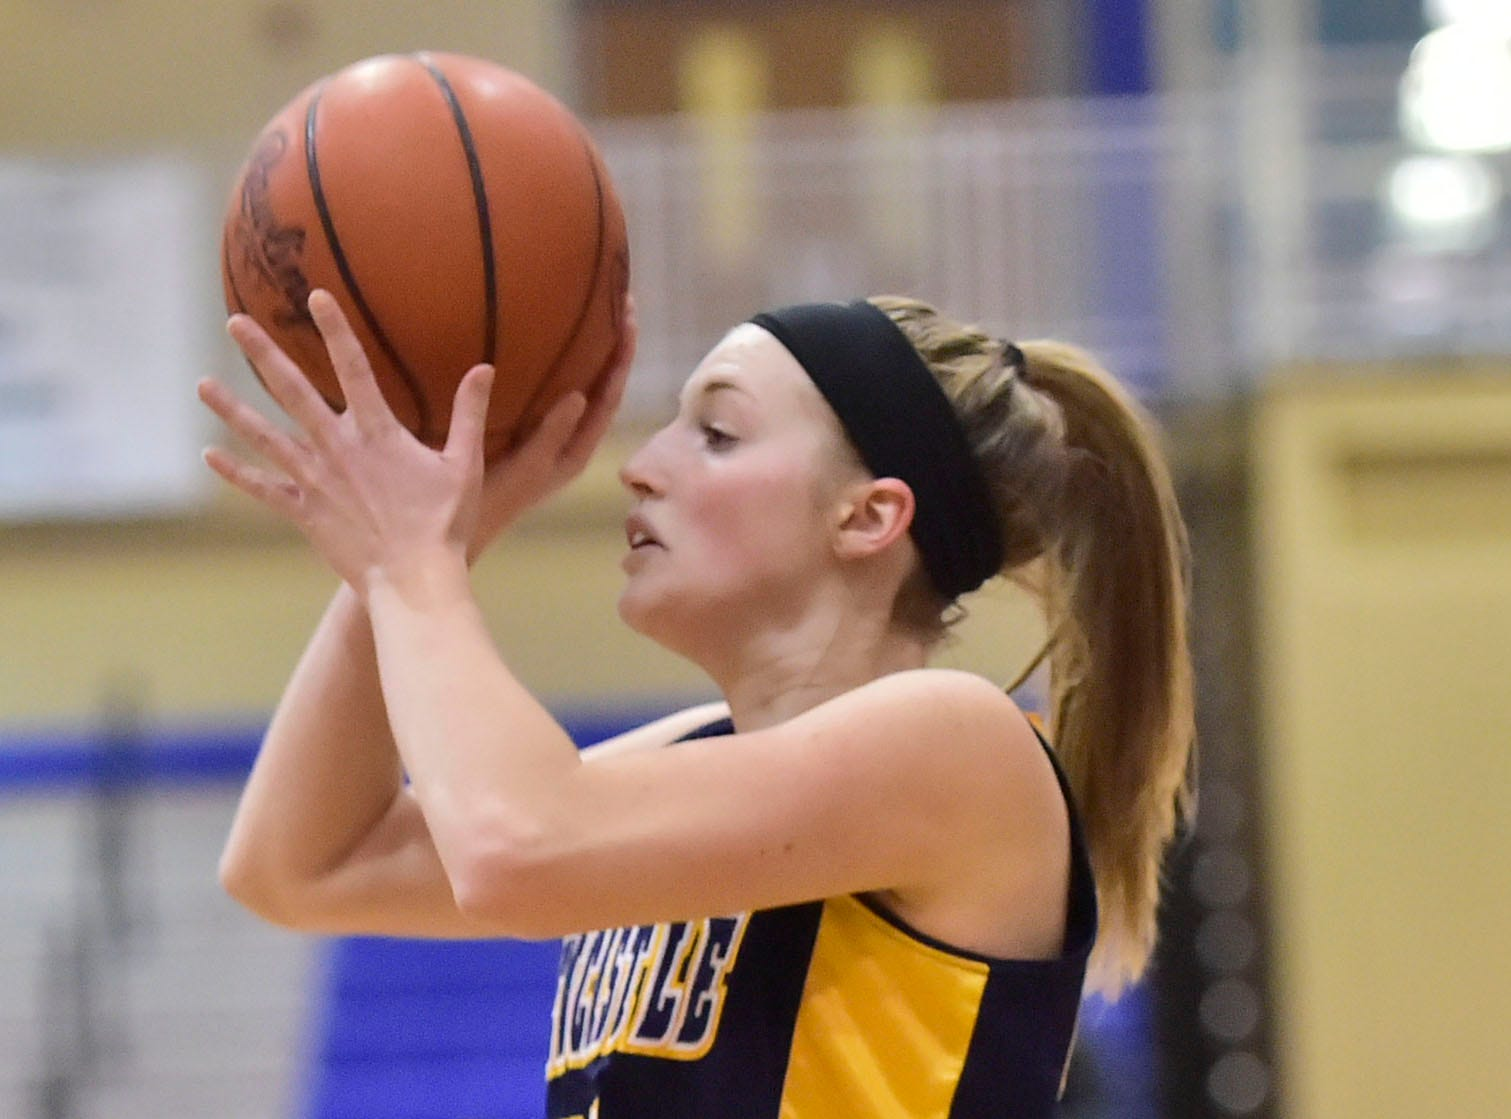 Waynesboro played Greencastle girls during the Franklin County Tip-Off Tournament, Friday, Dec. 7, 2018.